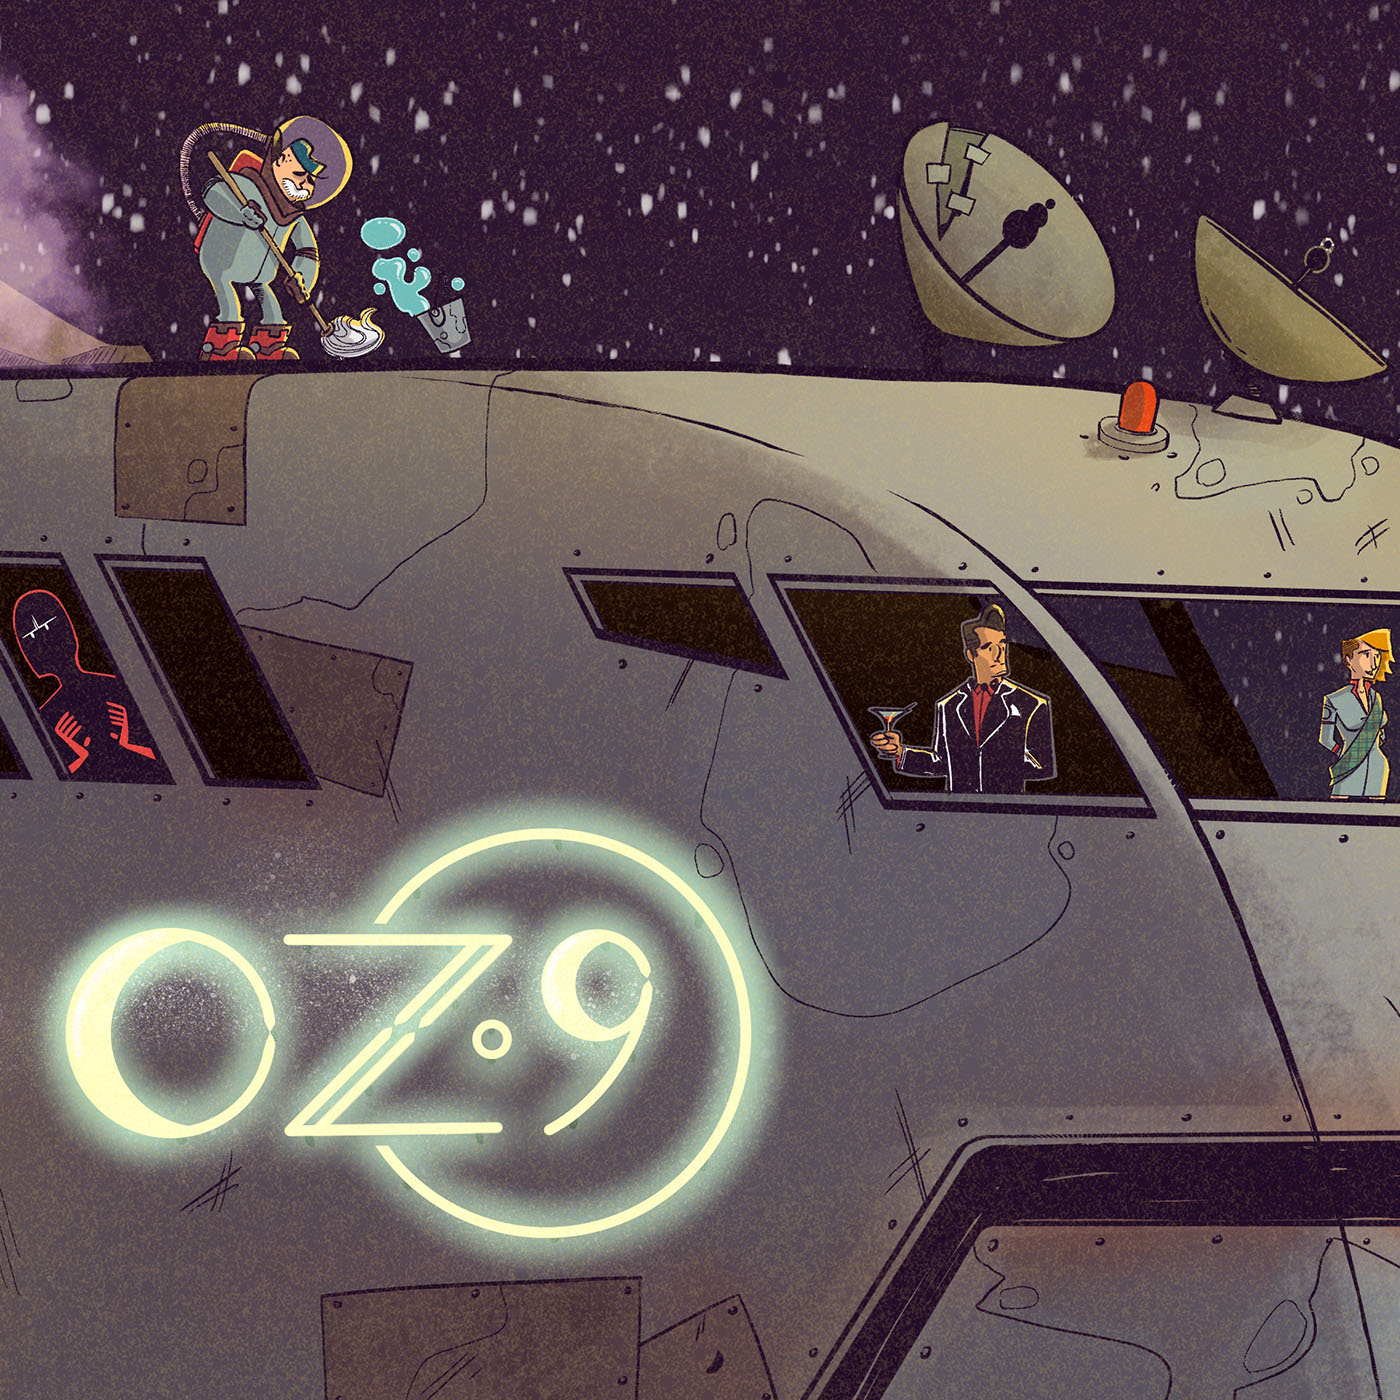 Oz 9 Podcast